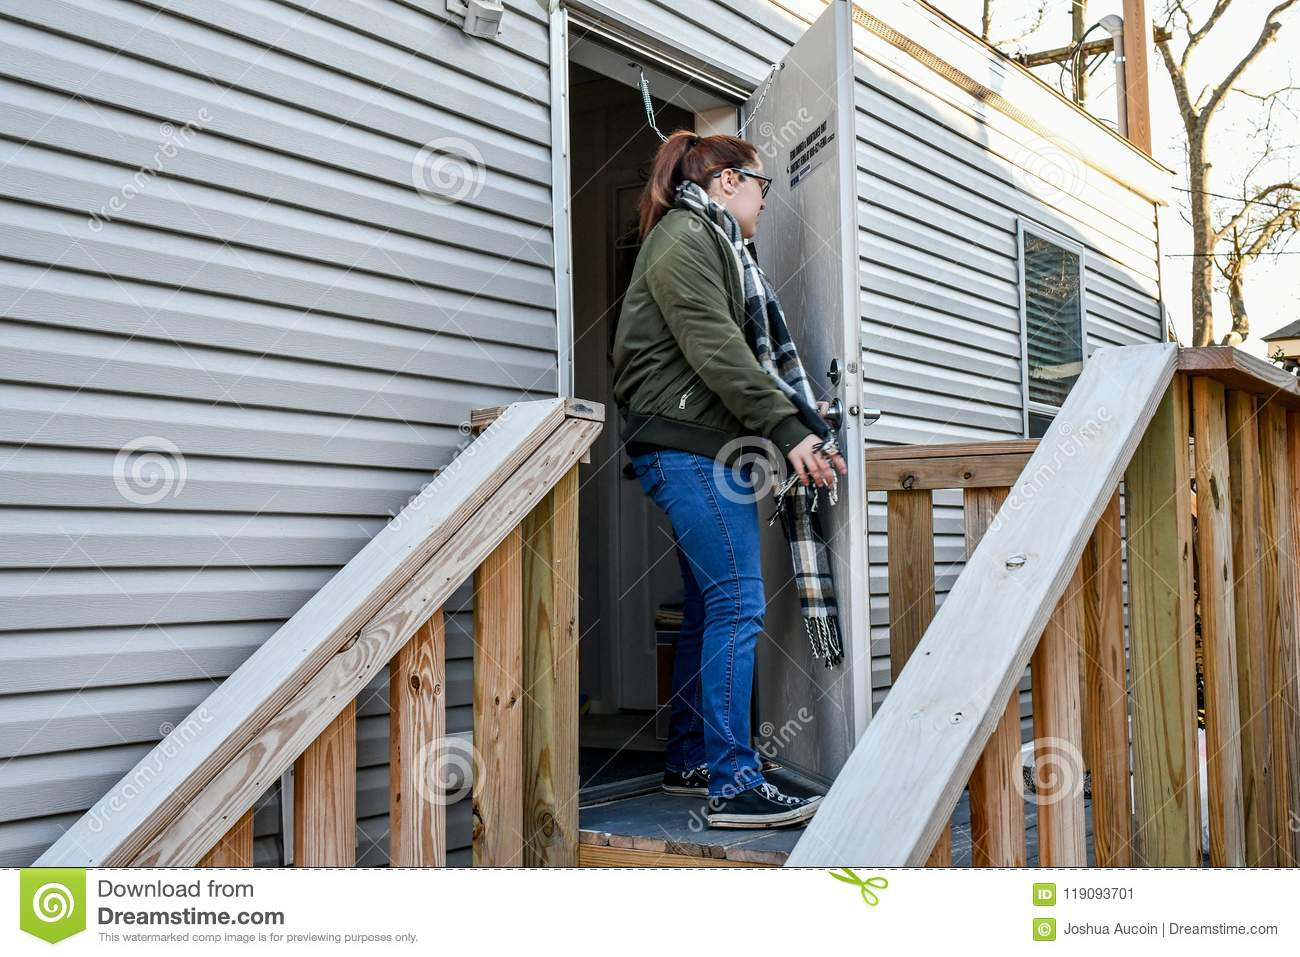 A woman walks out her front door to leave home.